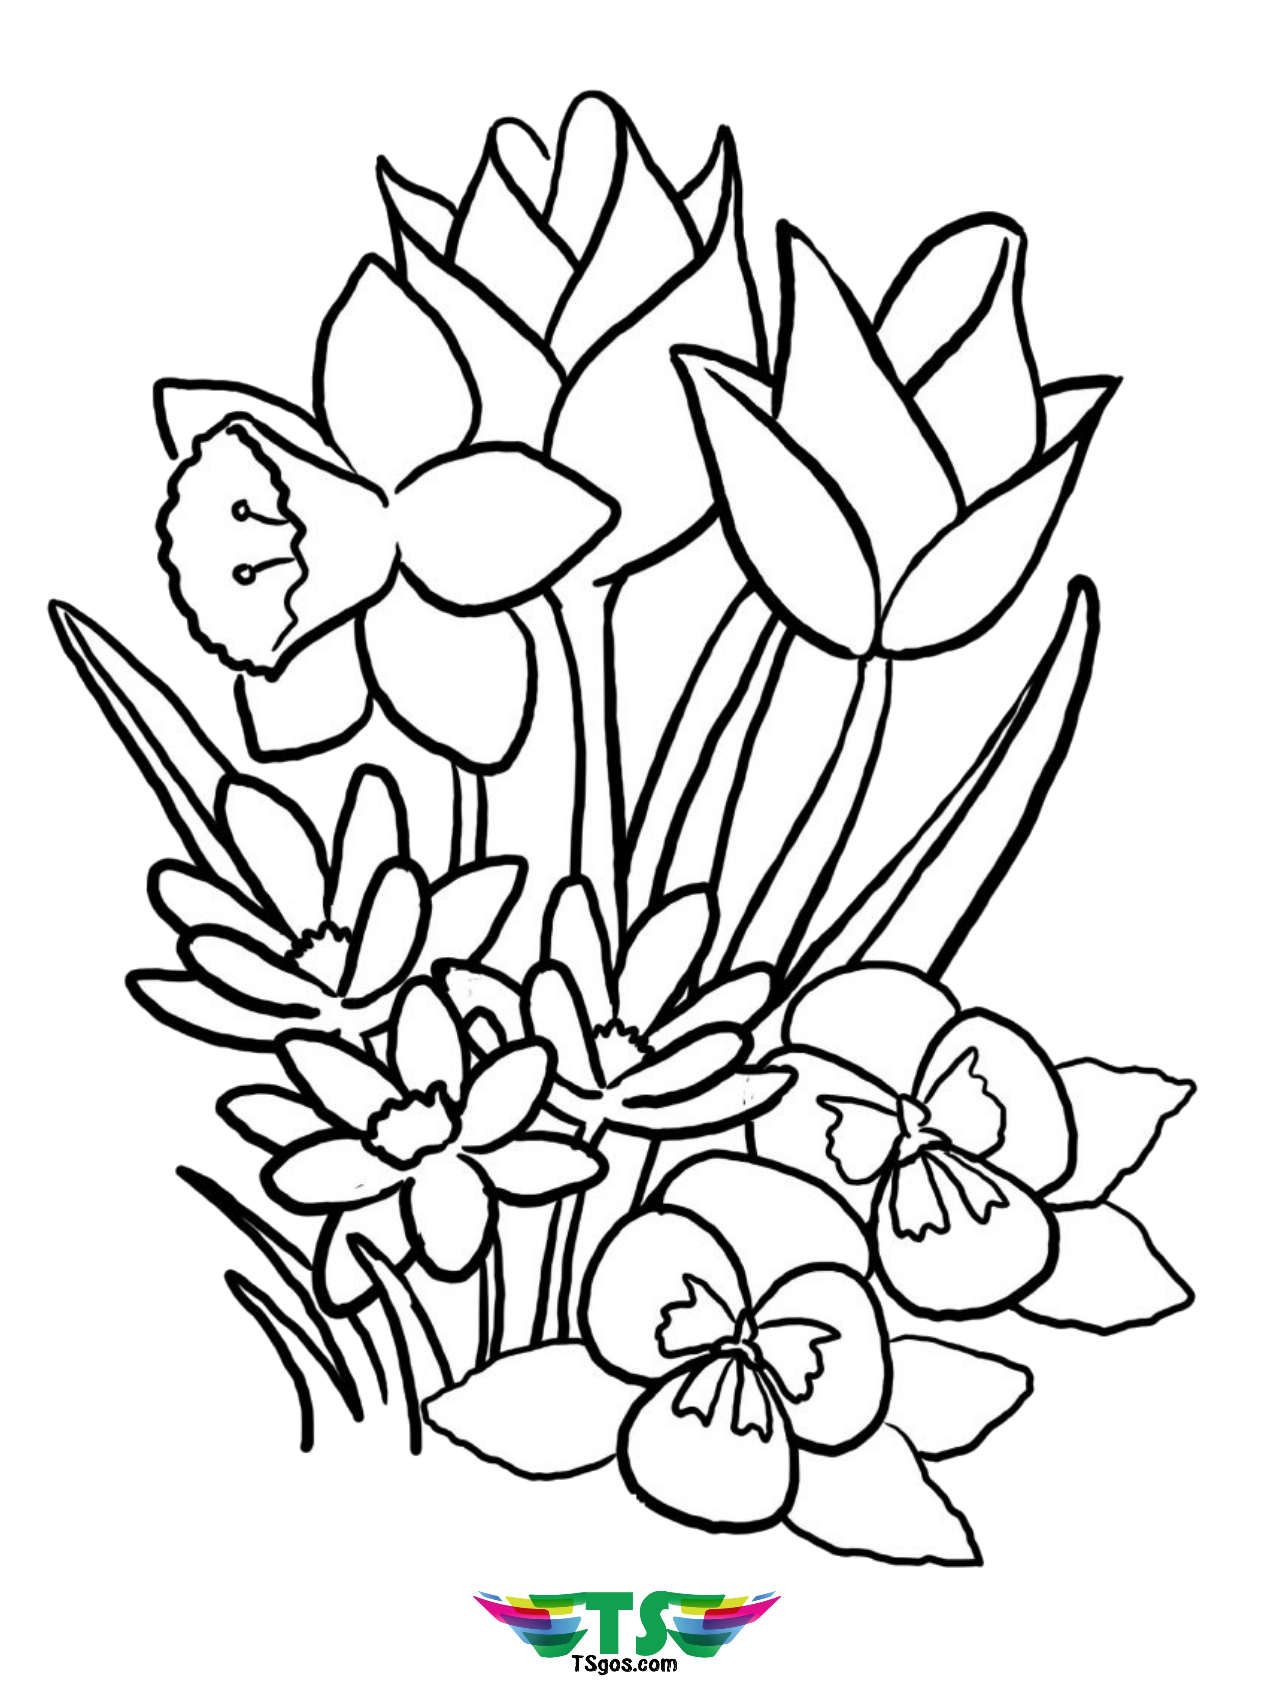 floral coloring pages bouquet of flowers coloring pages for childrens printable pages floral coloring